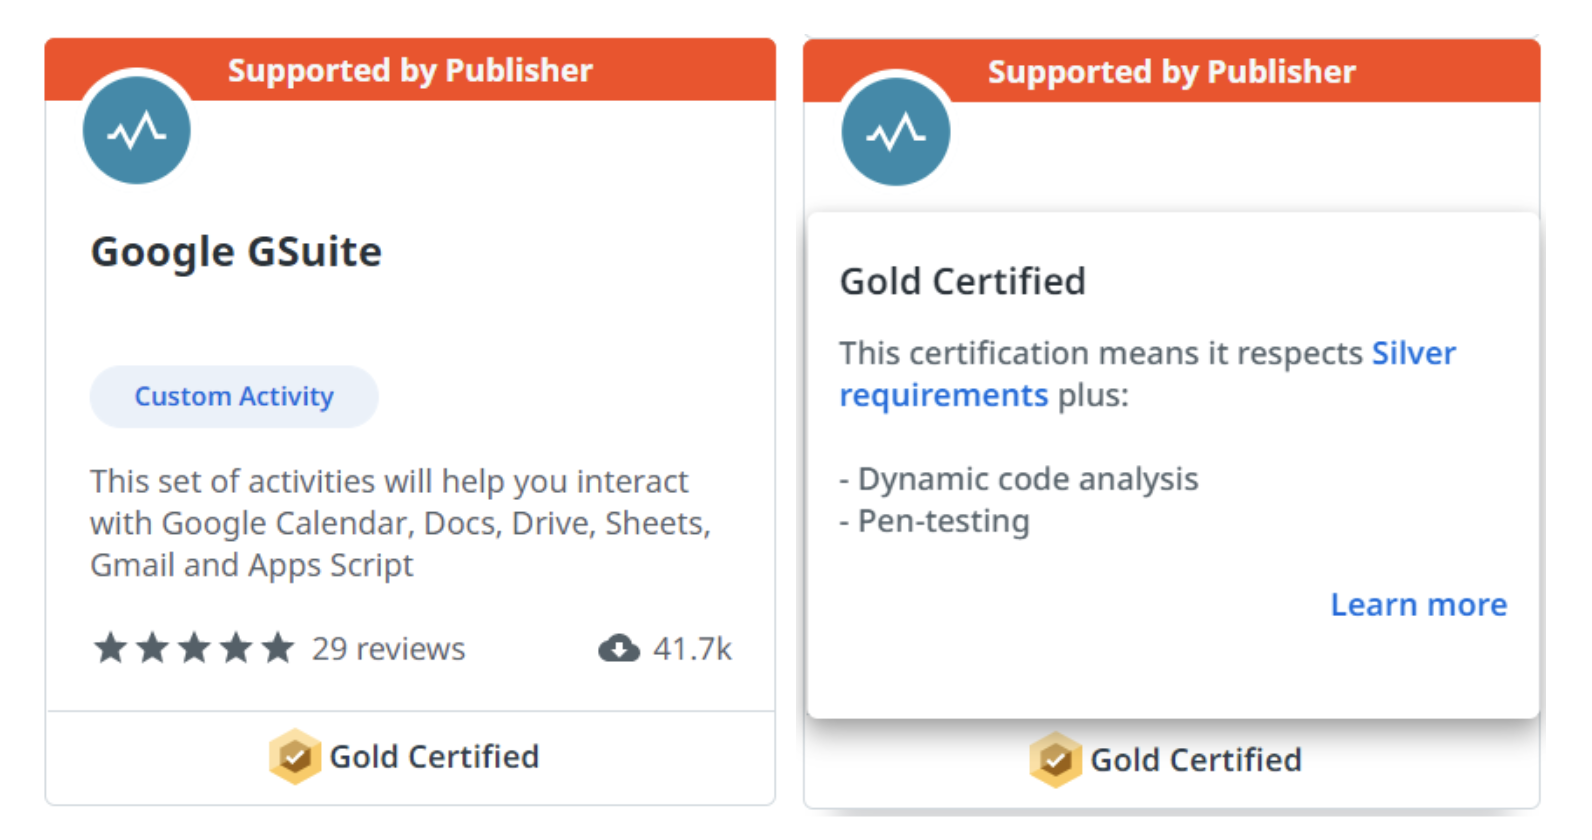 uipath marketplace gold certified example